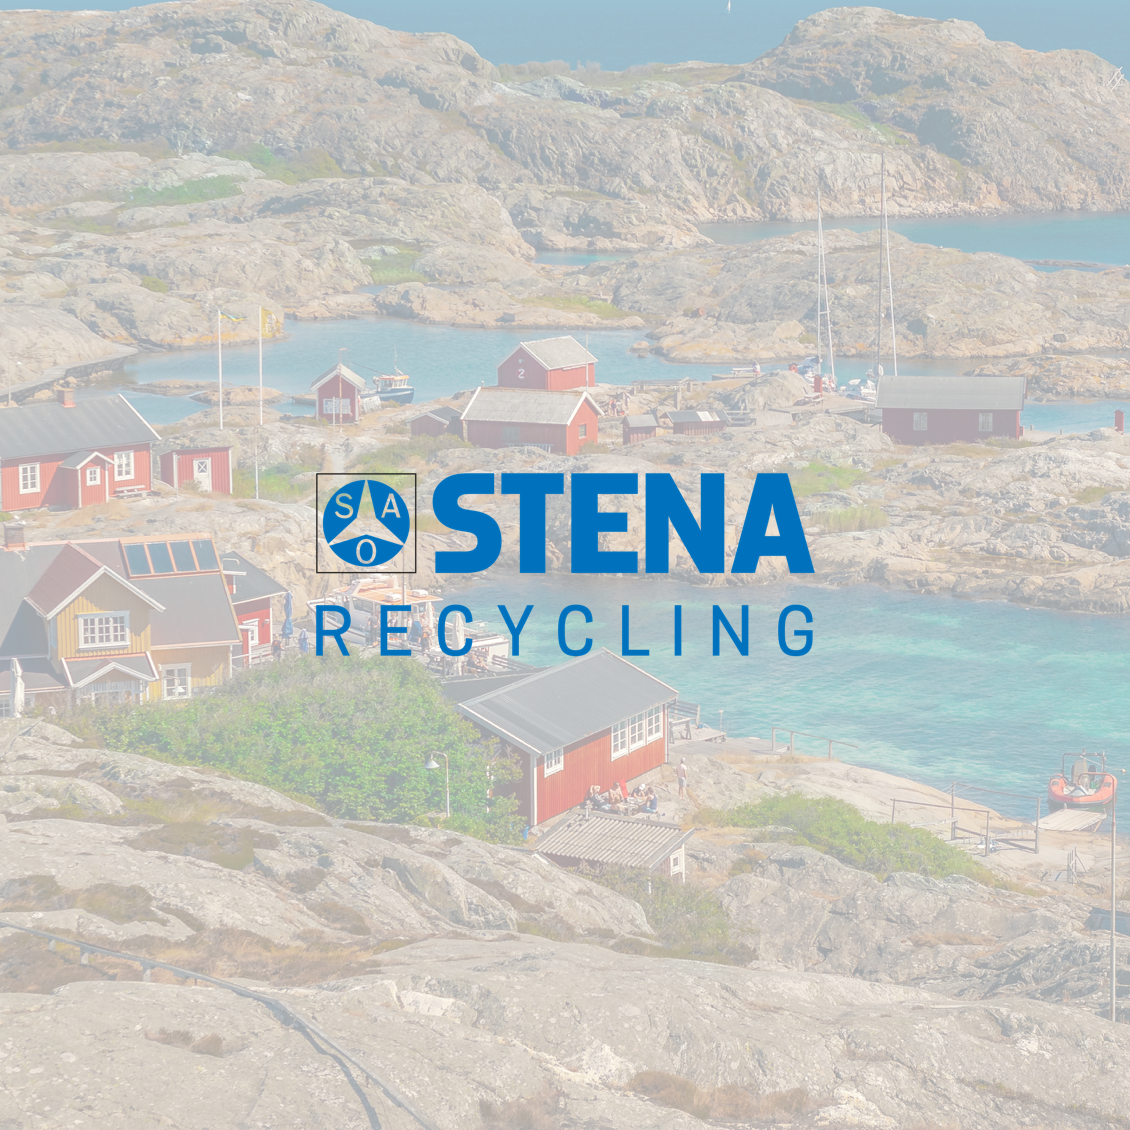 See the new mobile app for Stena Recycling. - A transformative approach for a new mobile app for the largest recycling company in Sweden.[coming soon!]